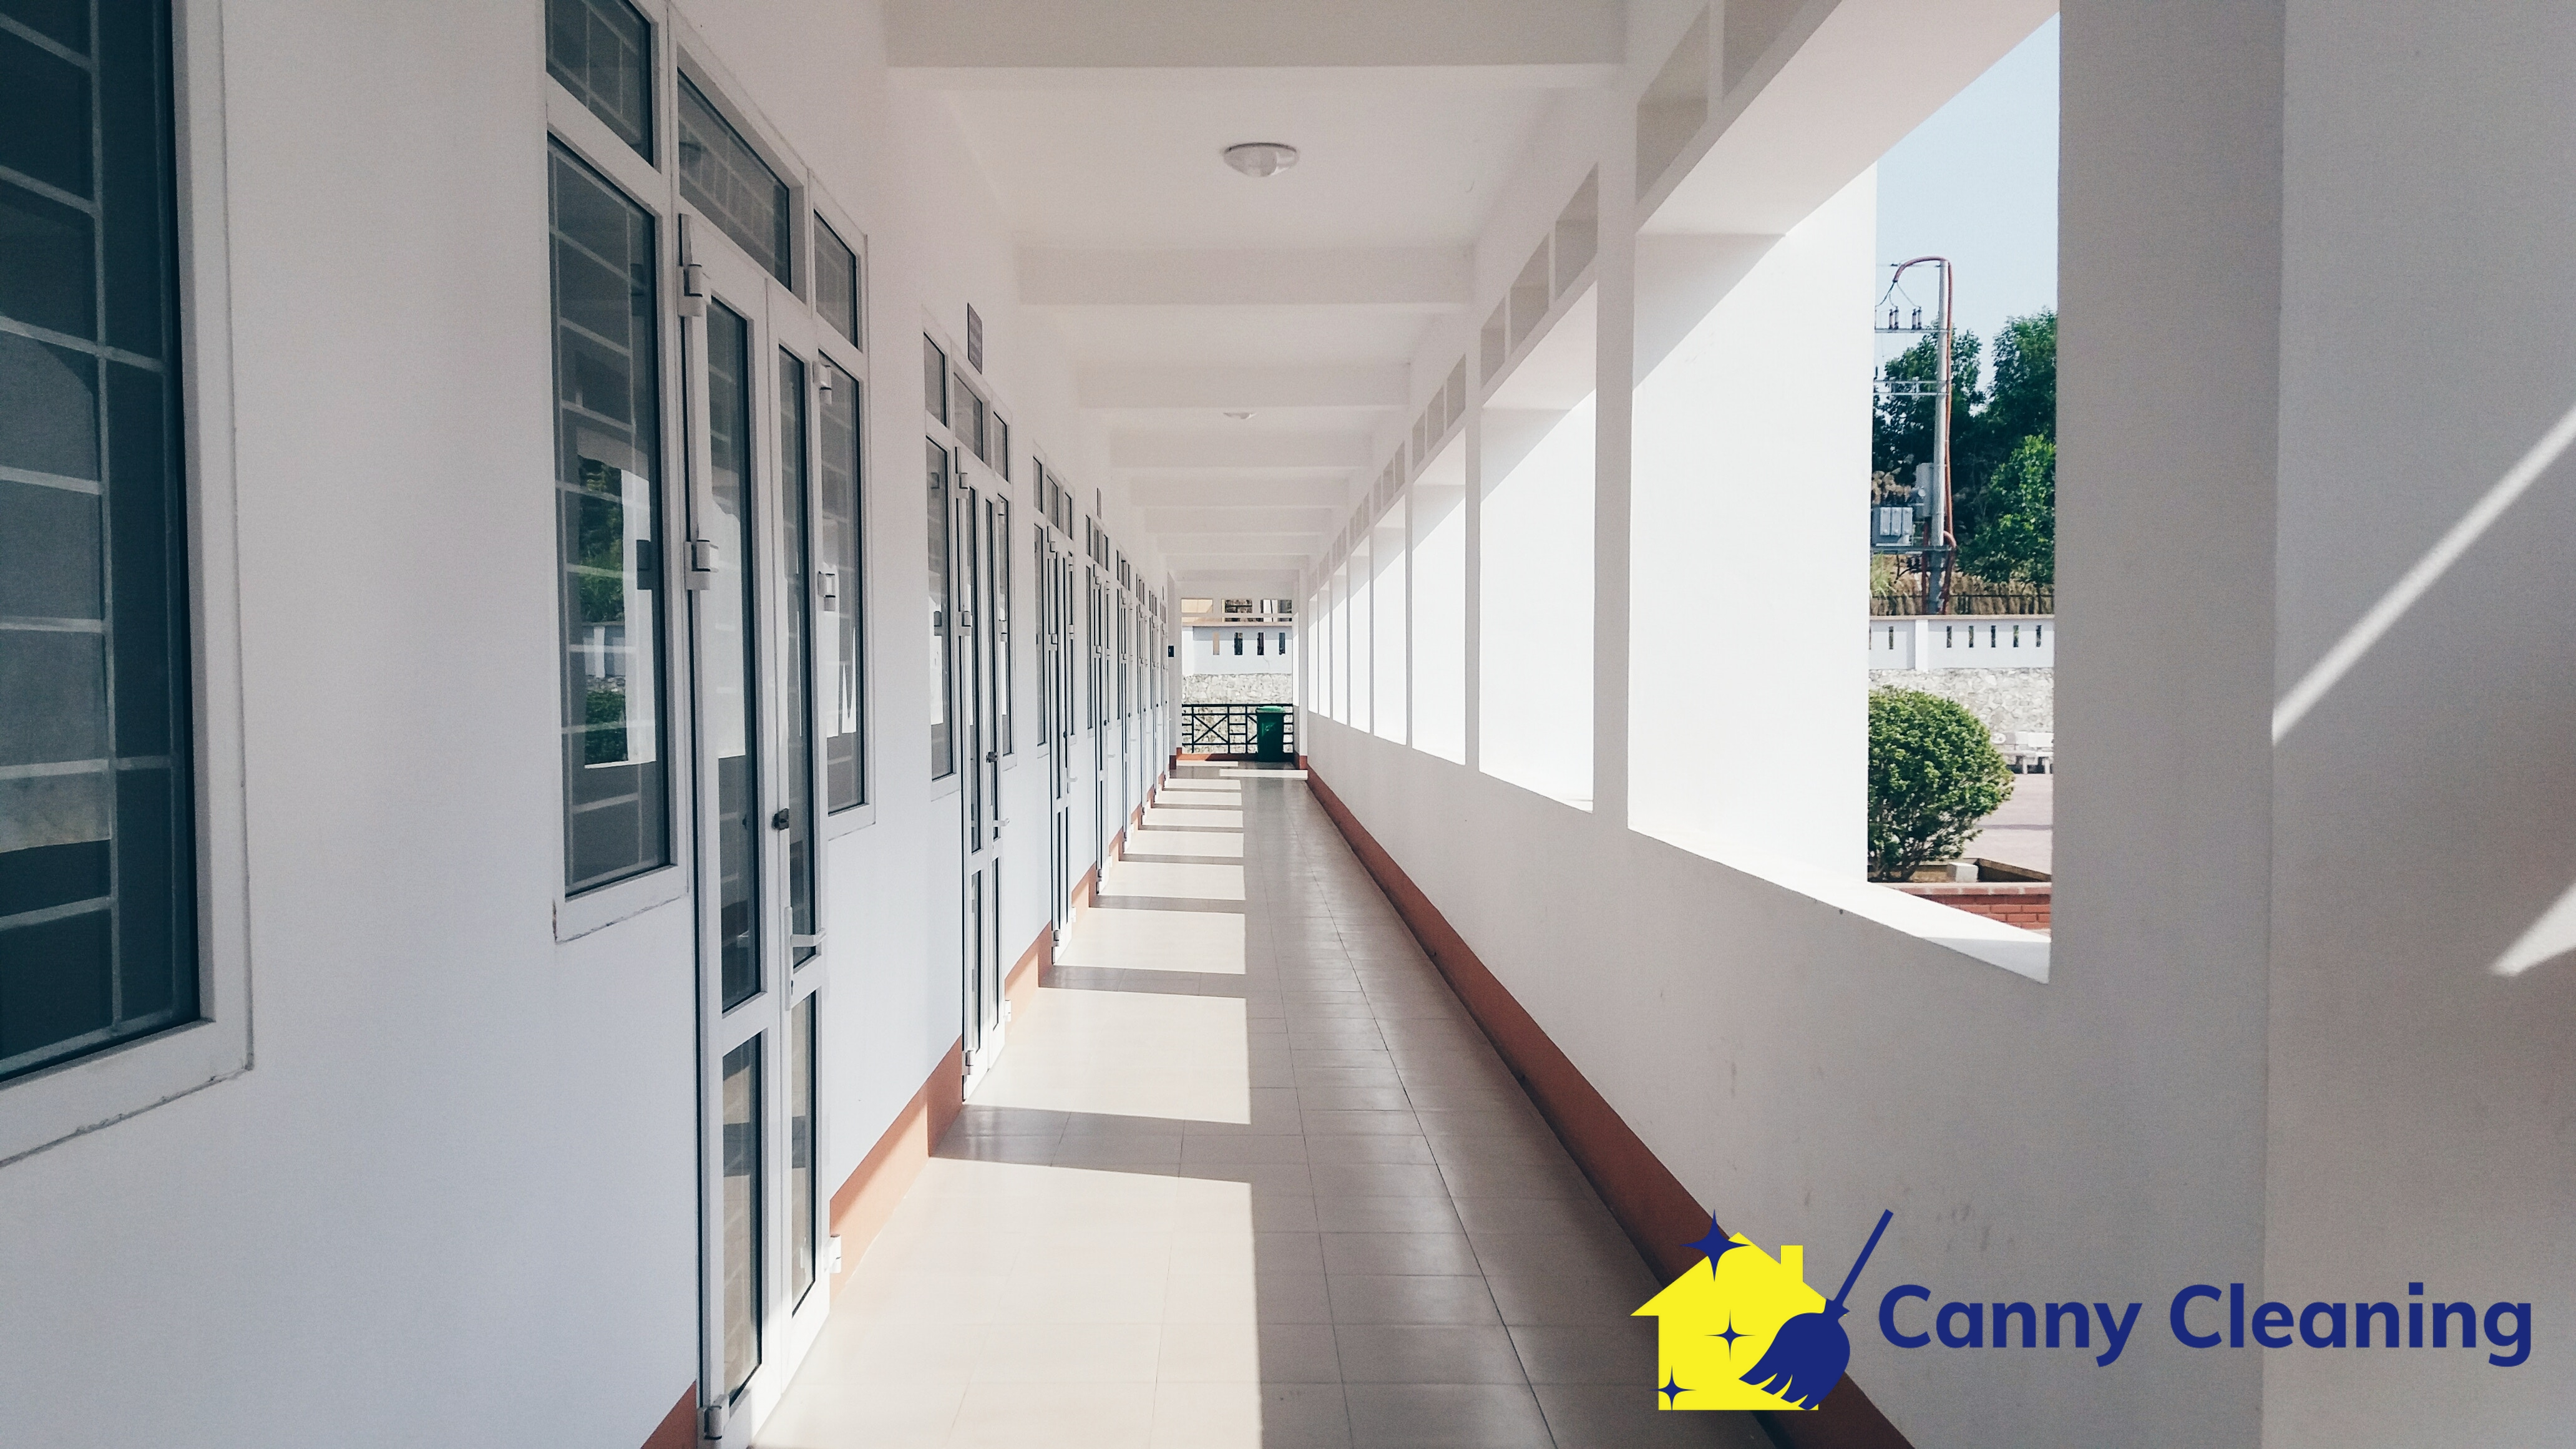 commercial cleaning canny cleaning services singapore